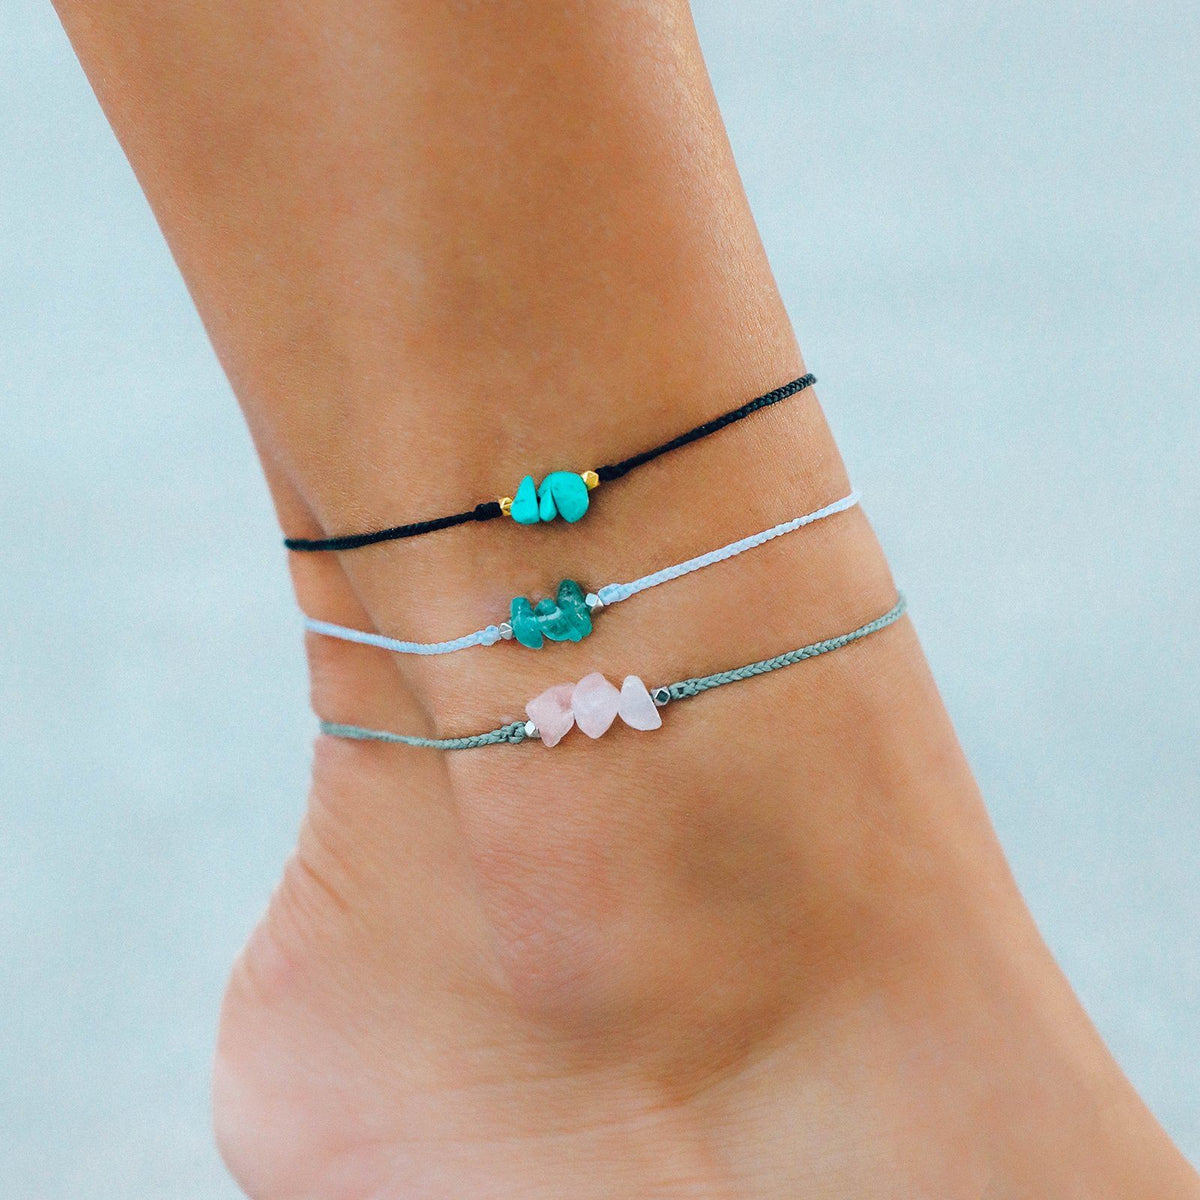 Turquoise Raw Stone Anklet 5